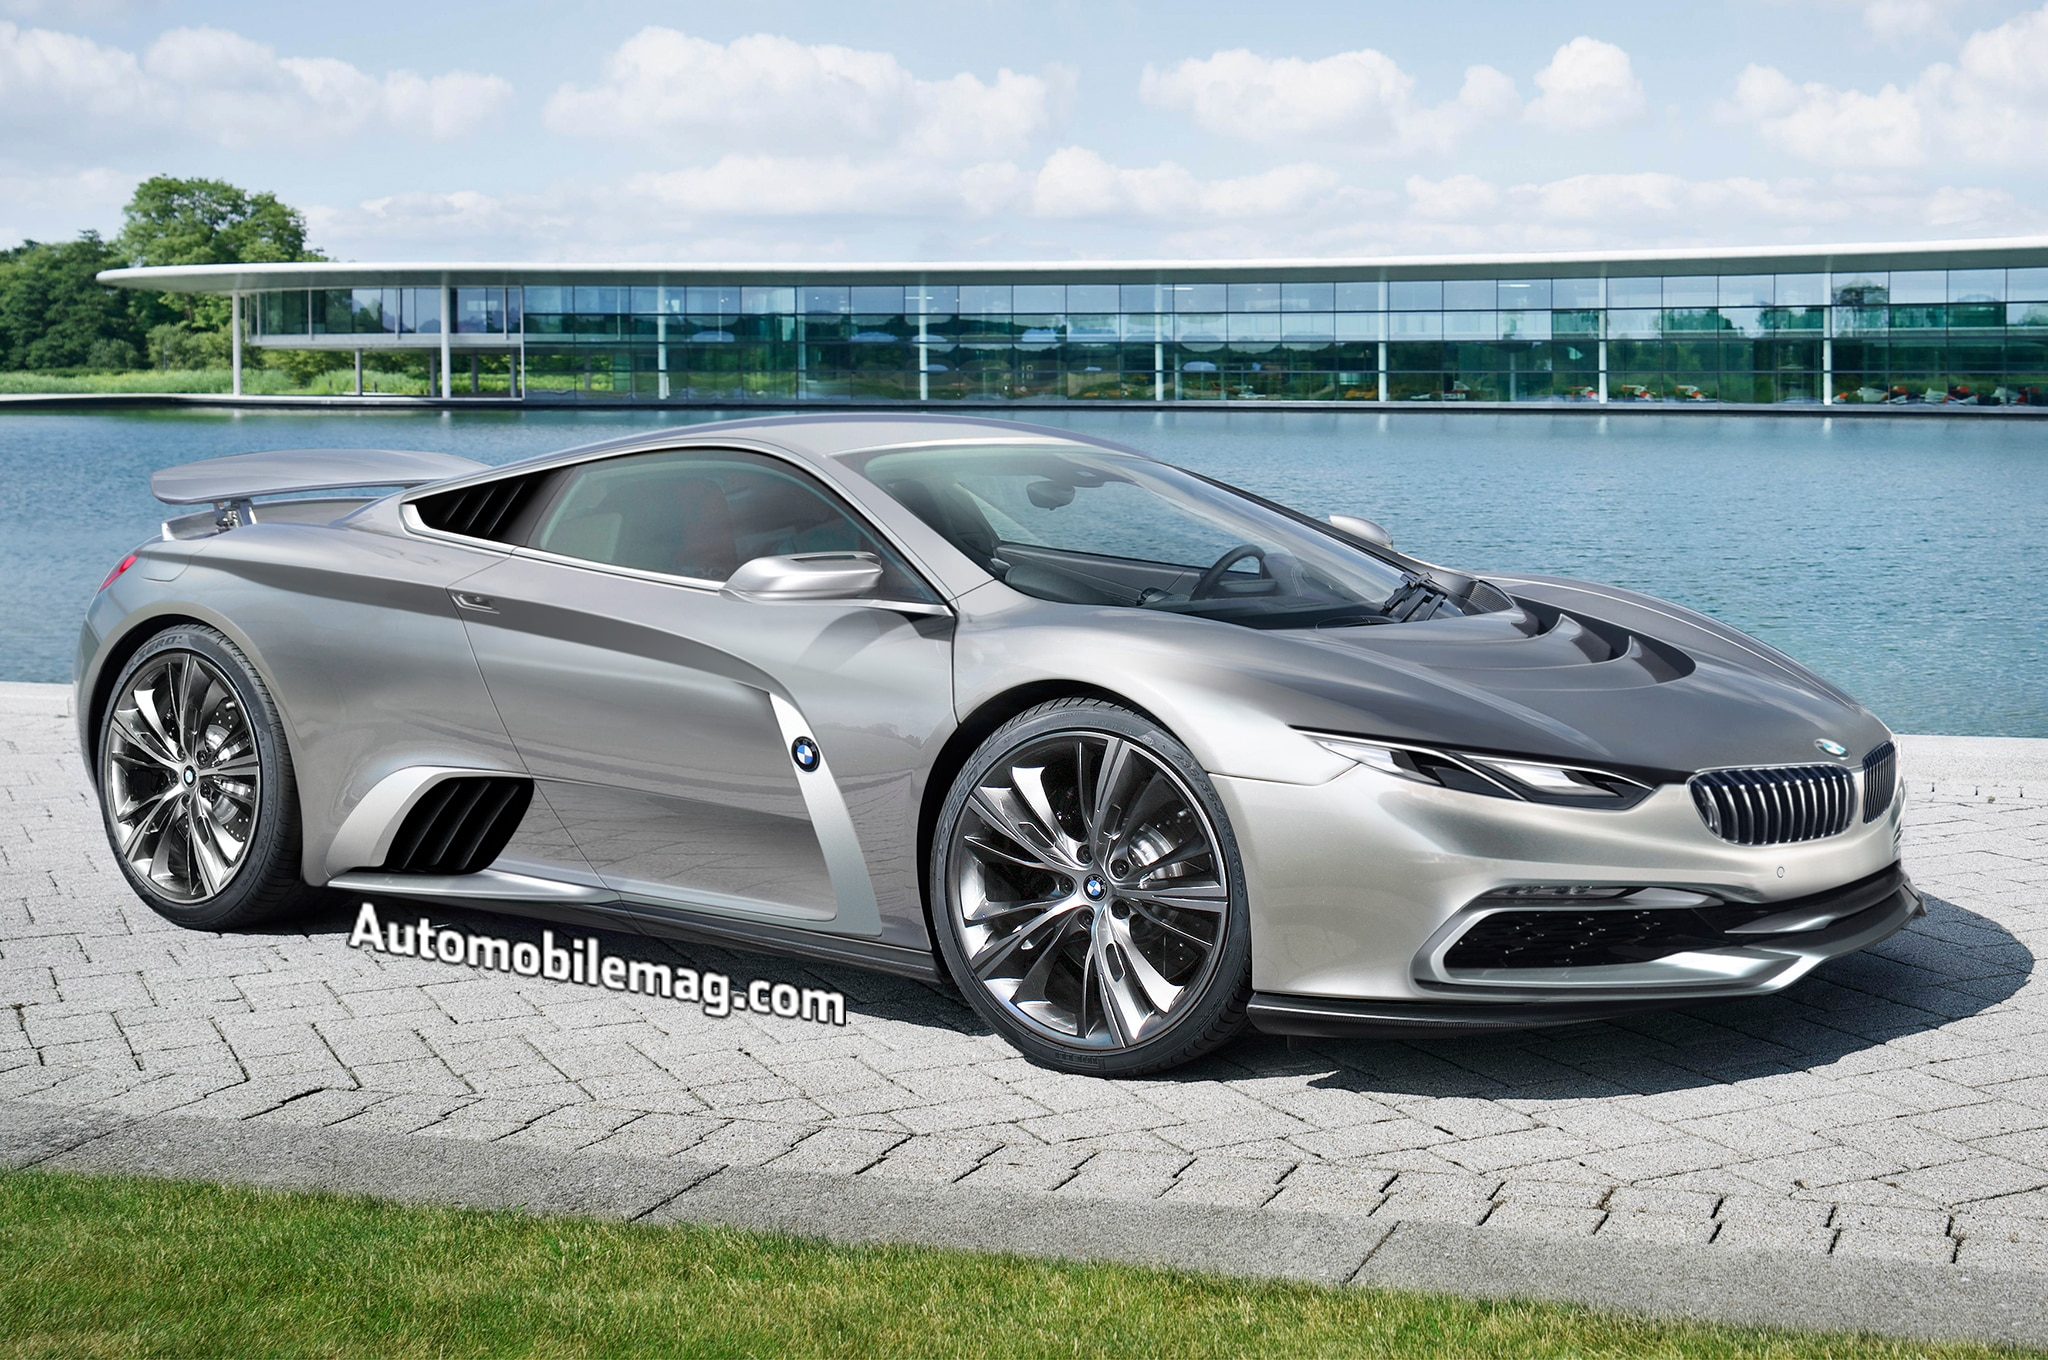 A Bmw And Mclaren Supercar Maybe Bmw And Lexus Humbug